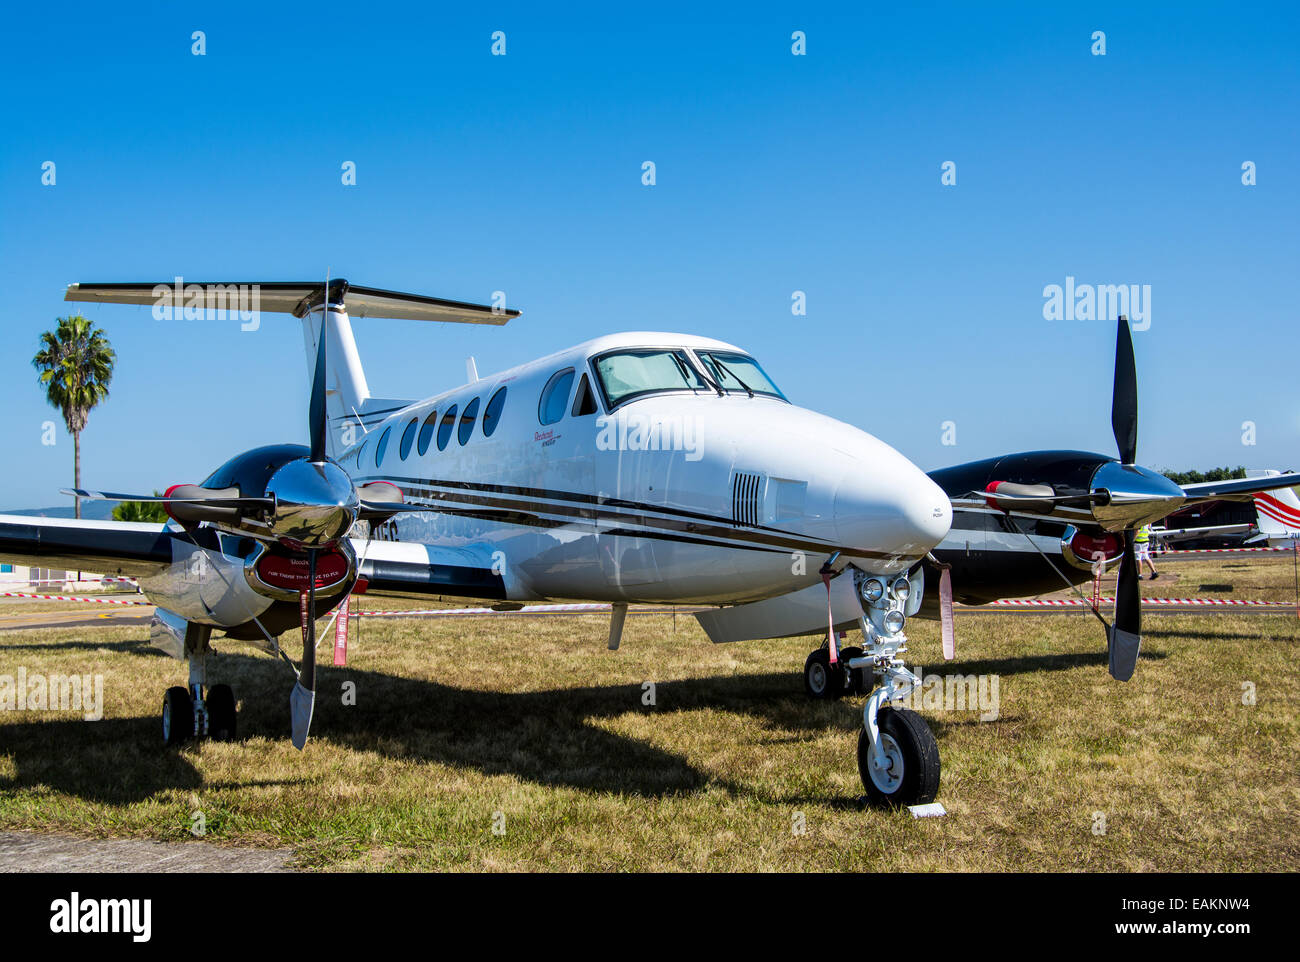 Beechcraft King Air at the Nelspruit Airport - Stock Image